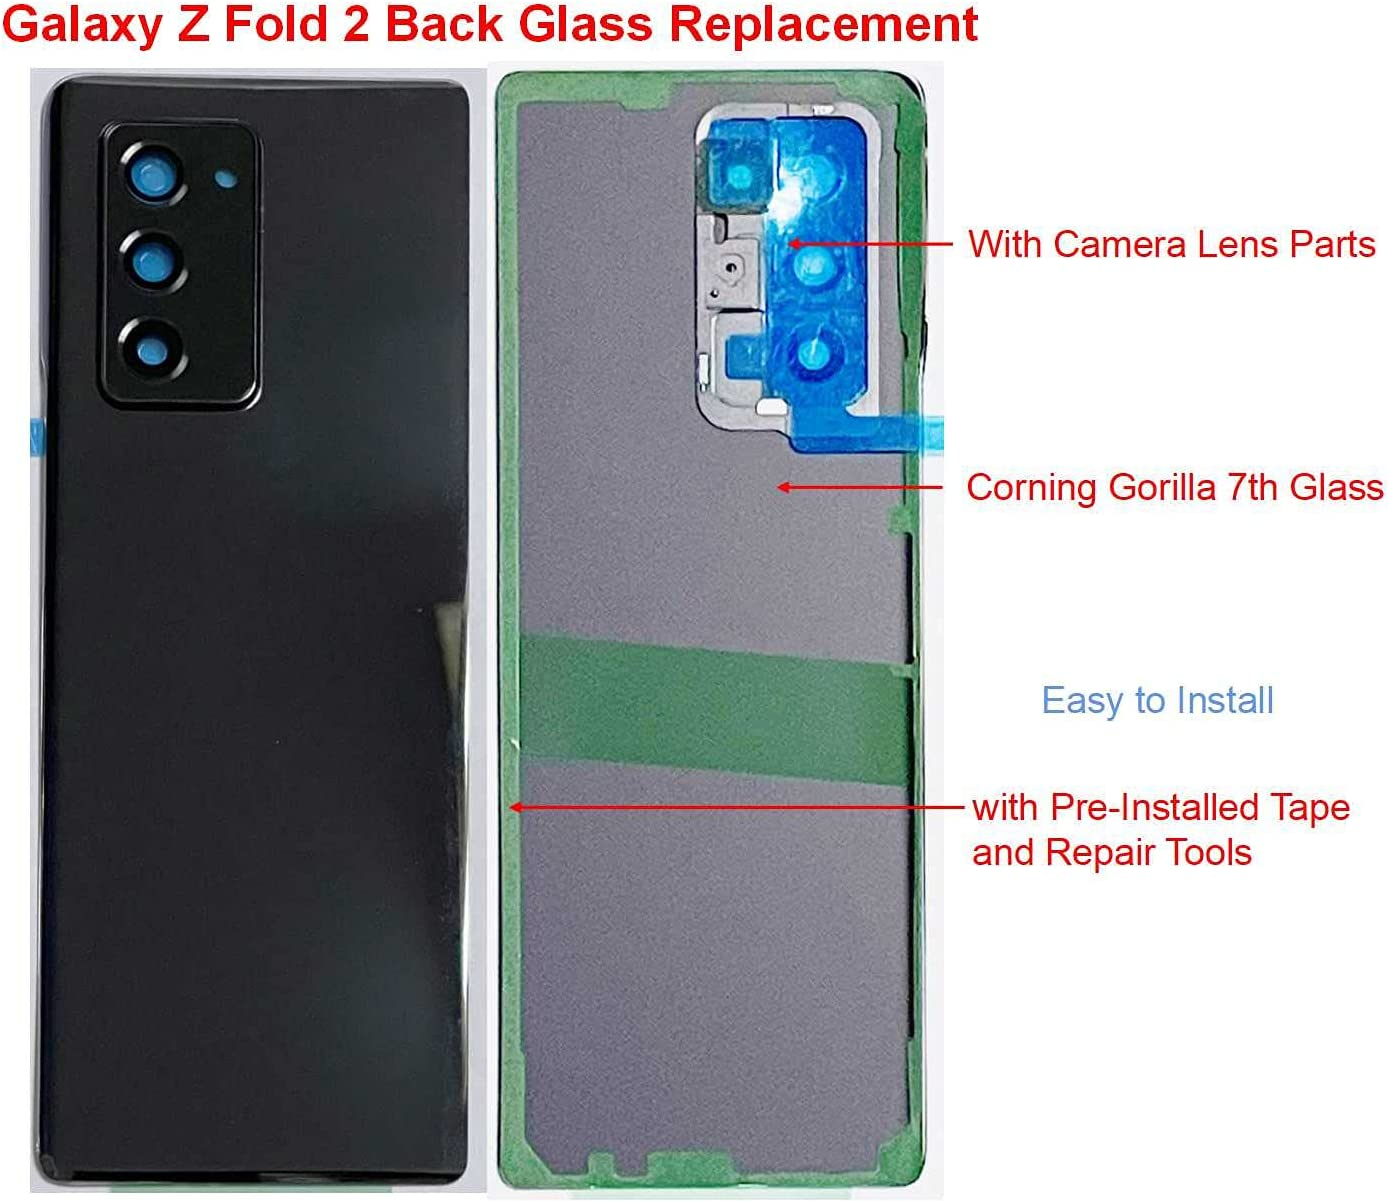 Z Fold 2 Back Glass Replacement W/Camera Lens and Pre-Installed Tape for Samsung Galaxy ZFold 2 SM-F916 5G Version Z Fold2 5G F916 Back Glass Housing Cover Part + Tools (Black)